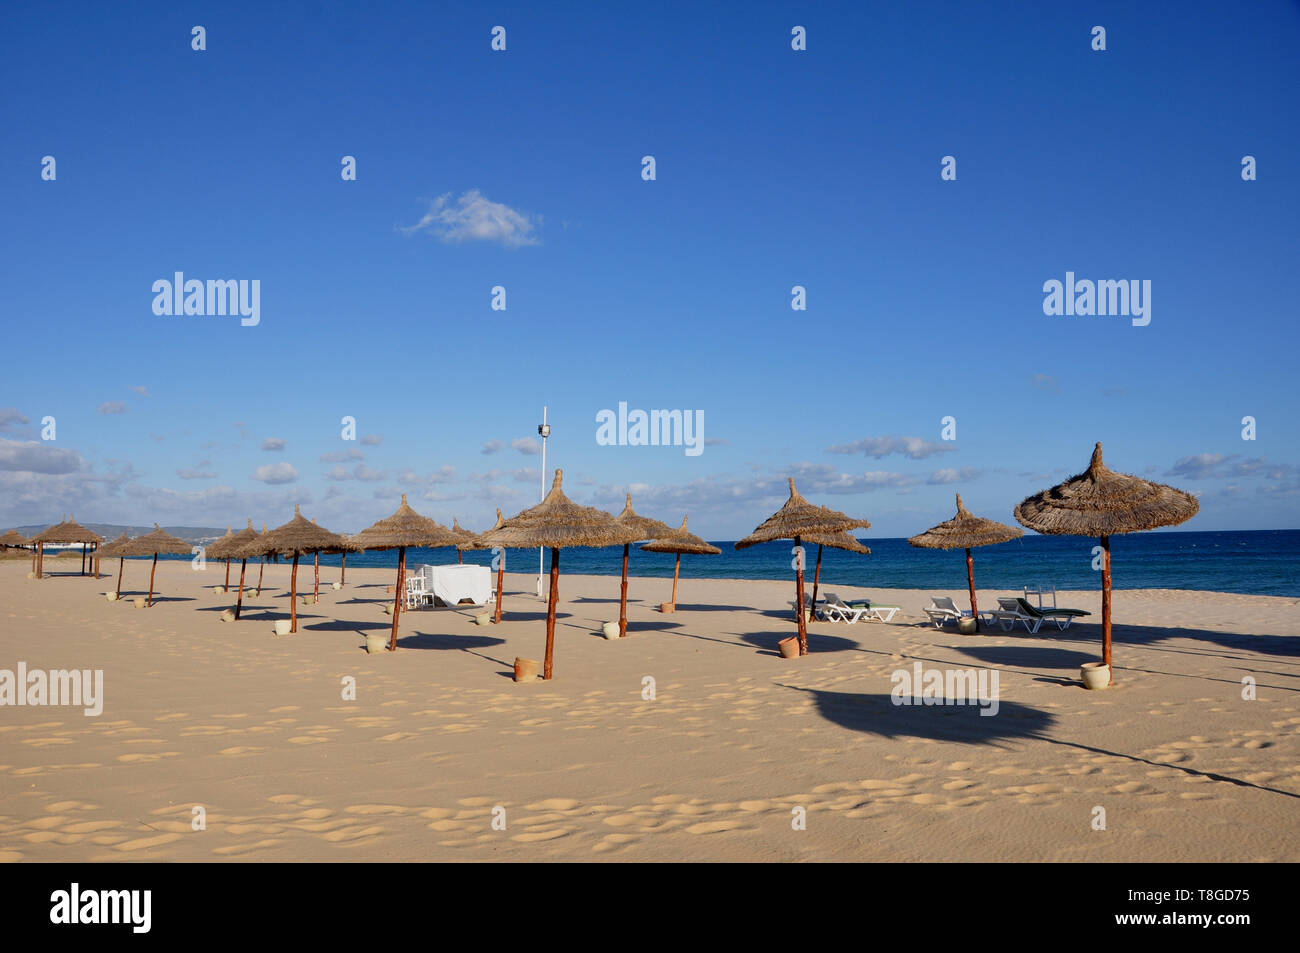 Tunesia: Empty tourist beach at Yasmine Hamamet - Stock Image